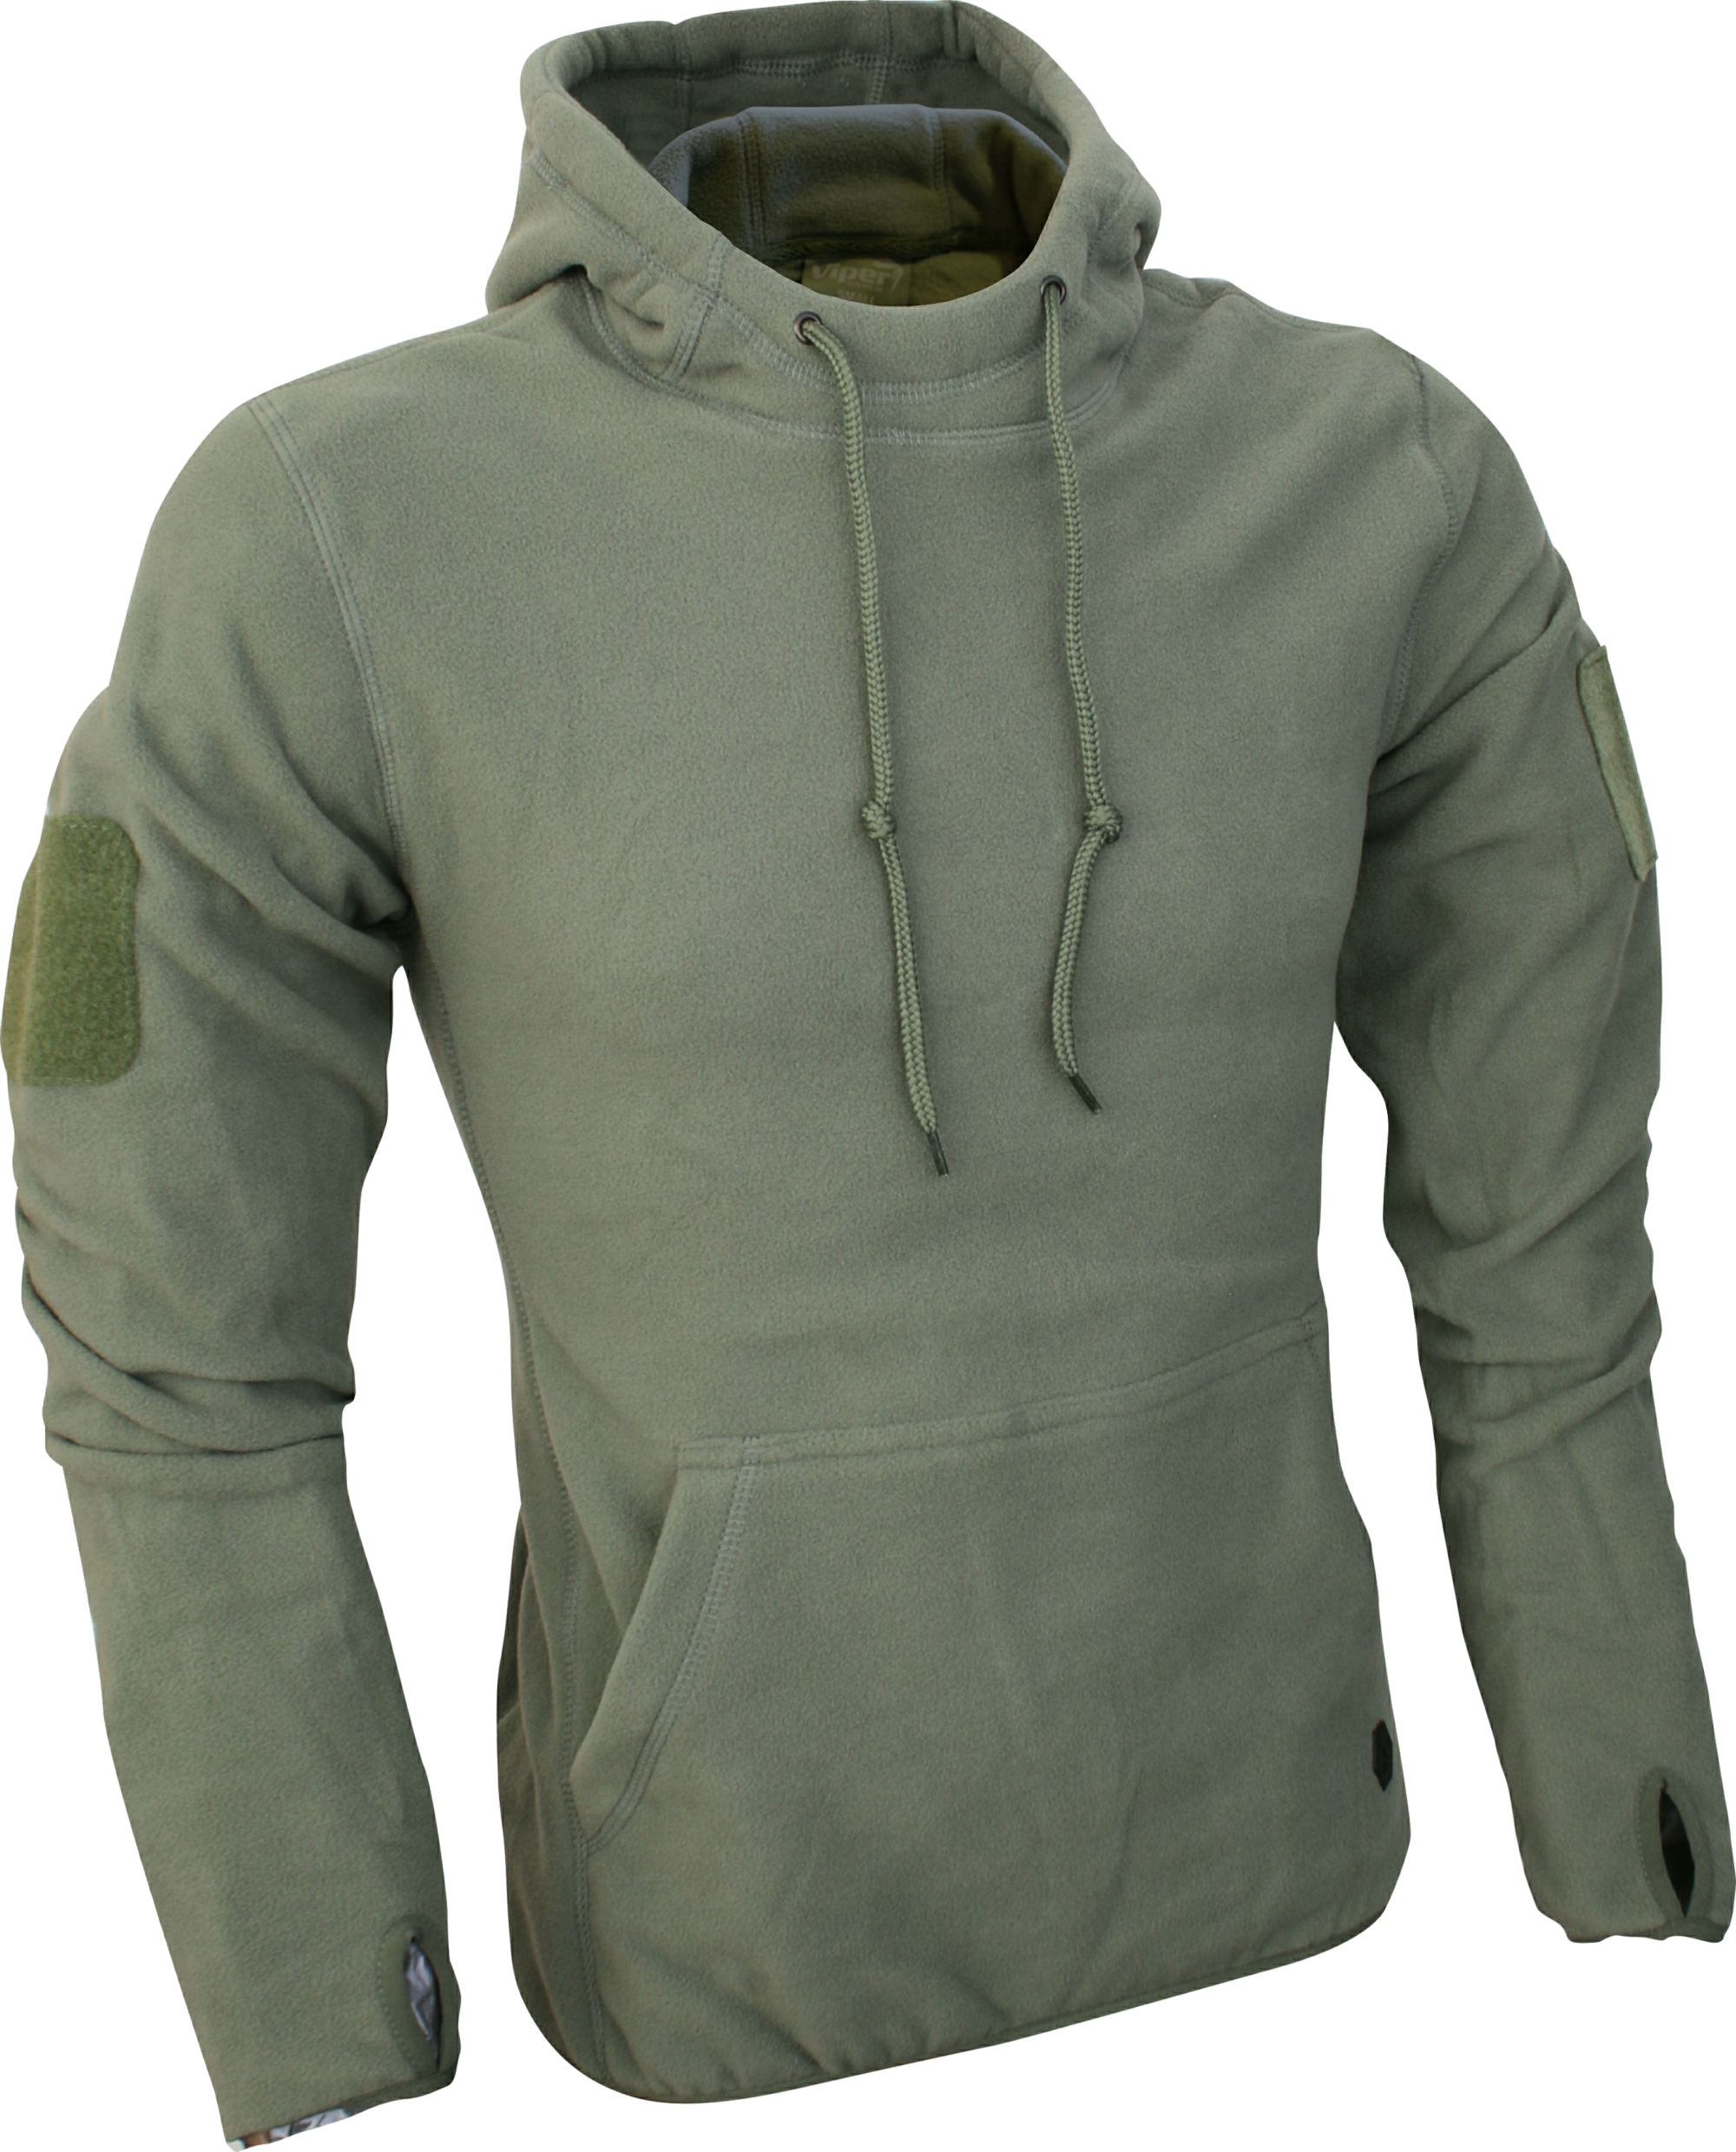 Viper-Tactical-Fleece-Hoodie-Military-Airsoft-Army-Combat-Leisure-of-Camp-Wear